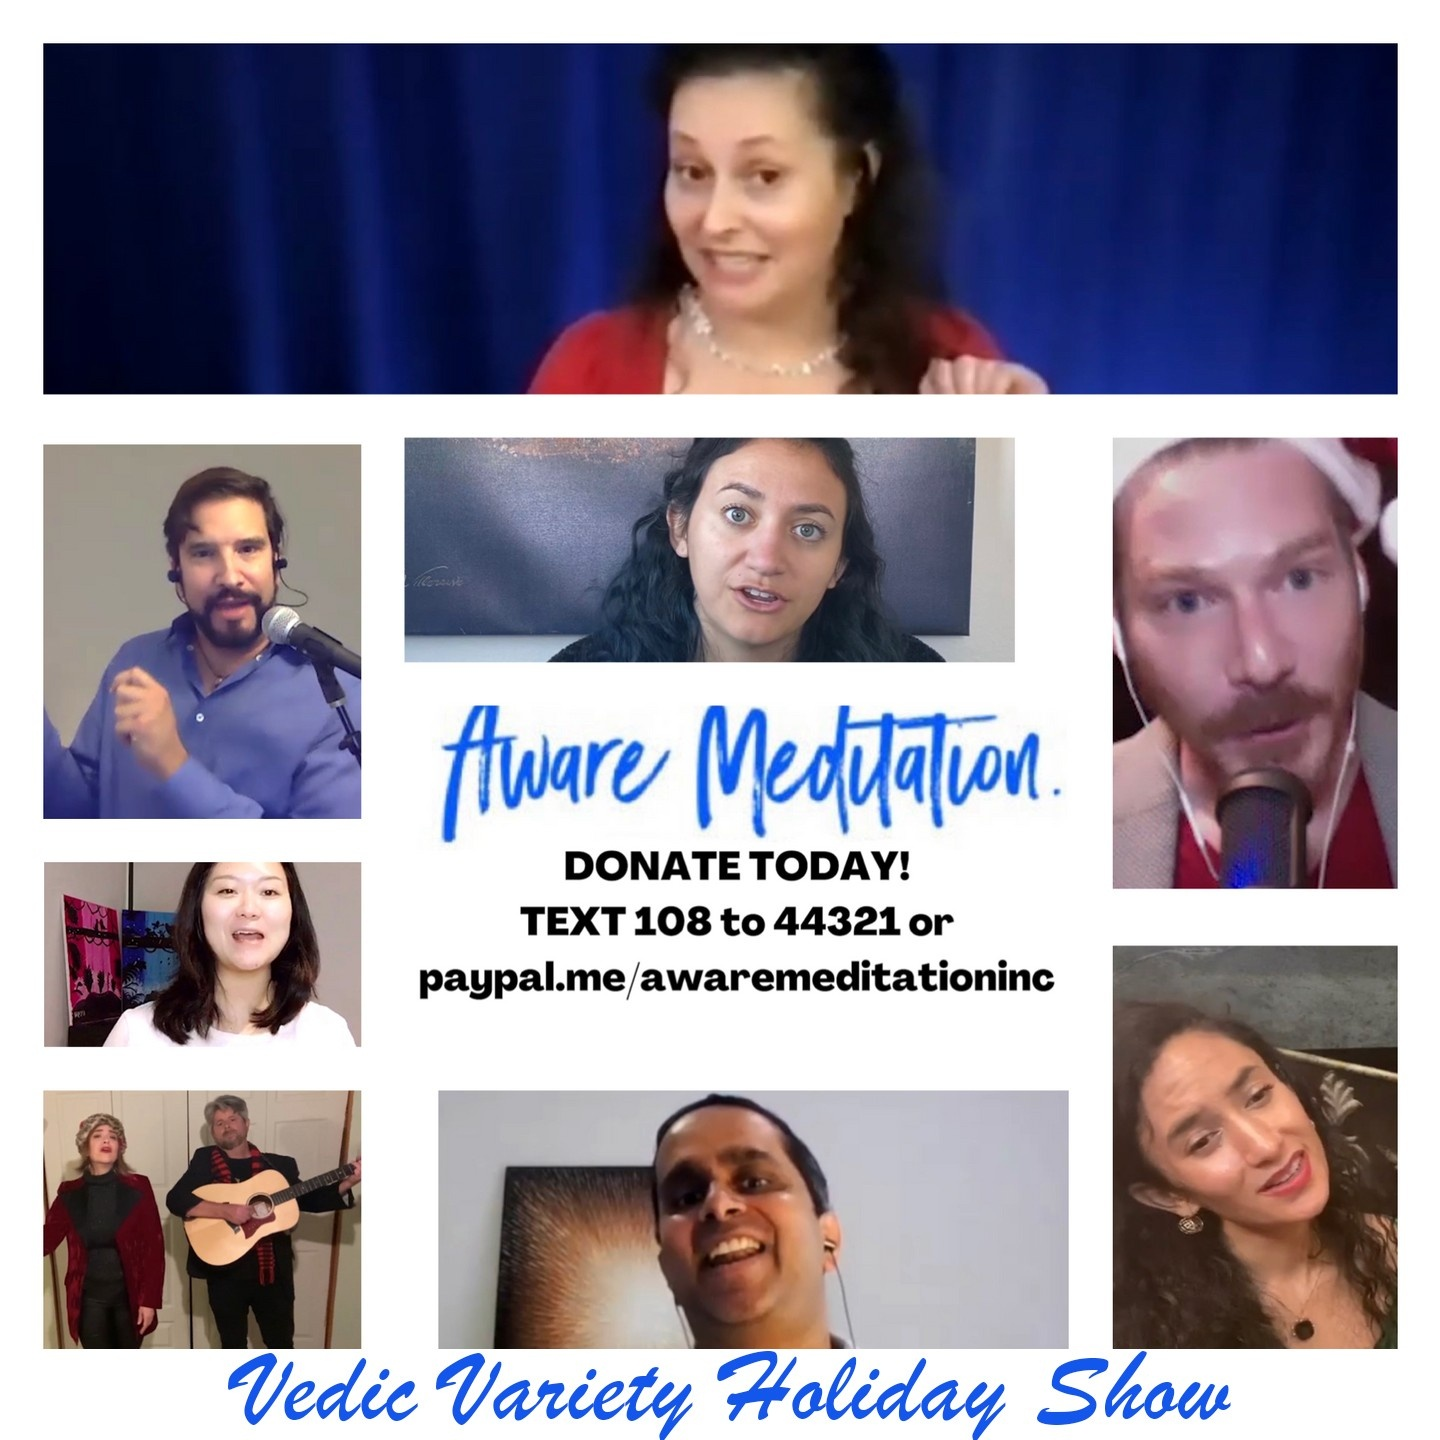 Vedic Variety Holiday Show Flyer